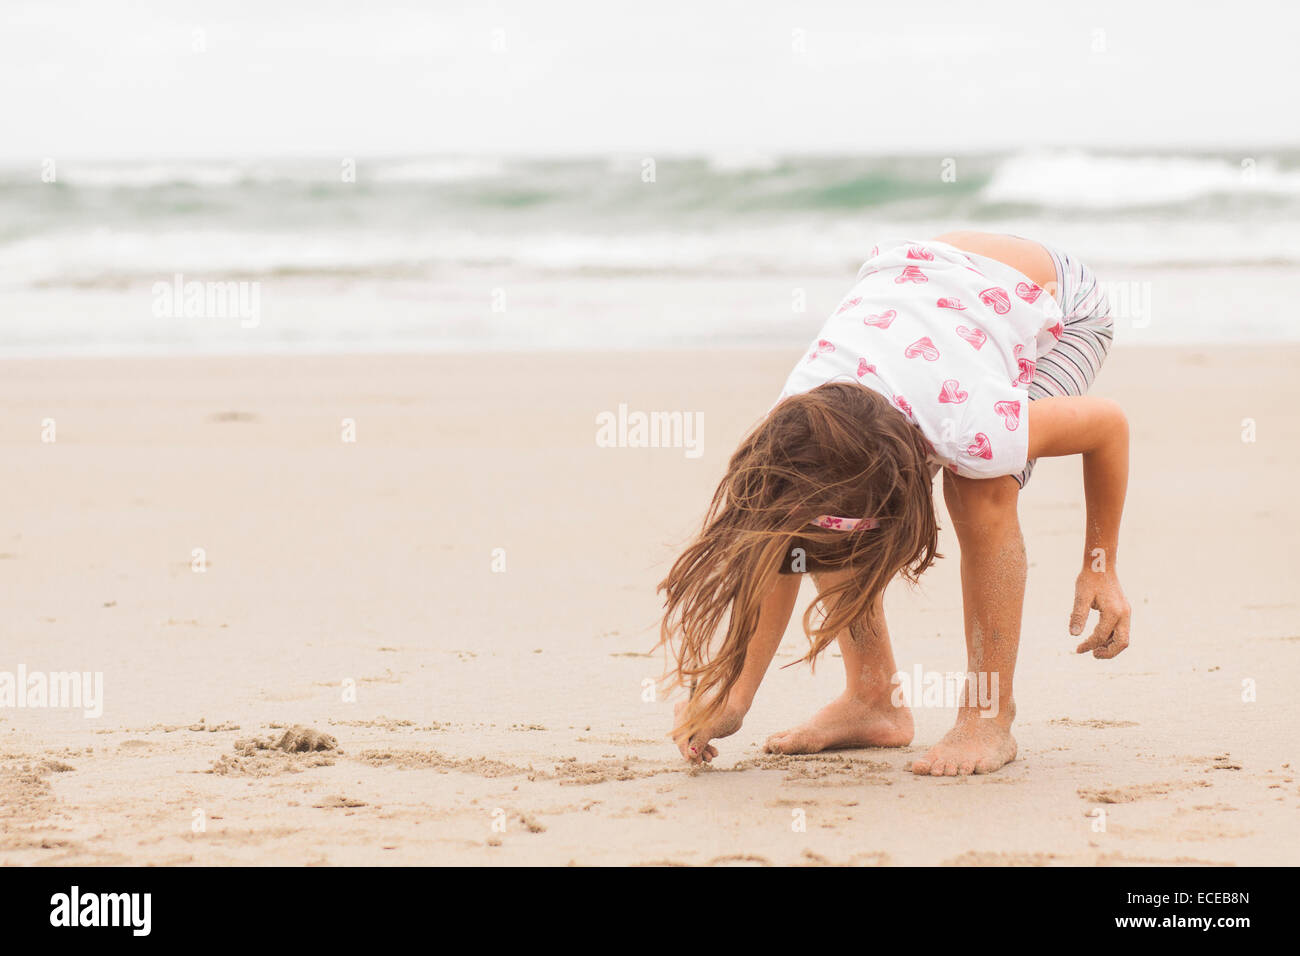 Girl (4-5) le dessin dans le sable Photo Stock